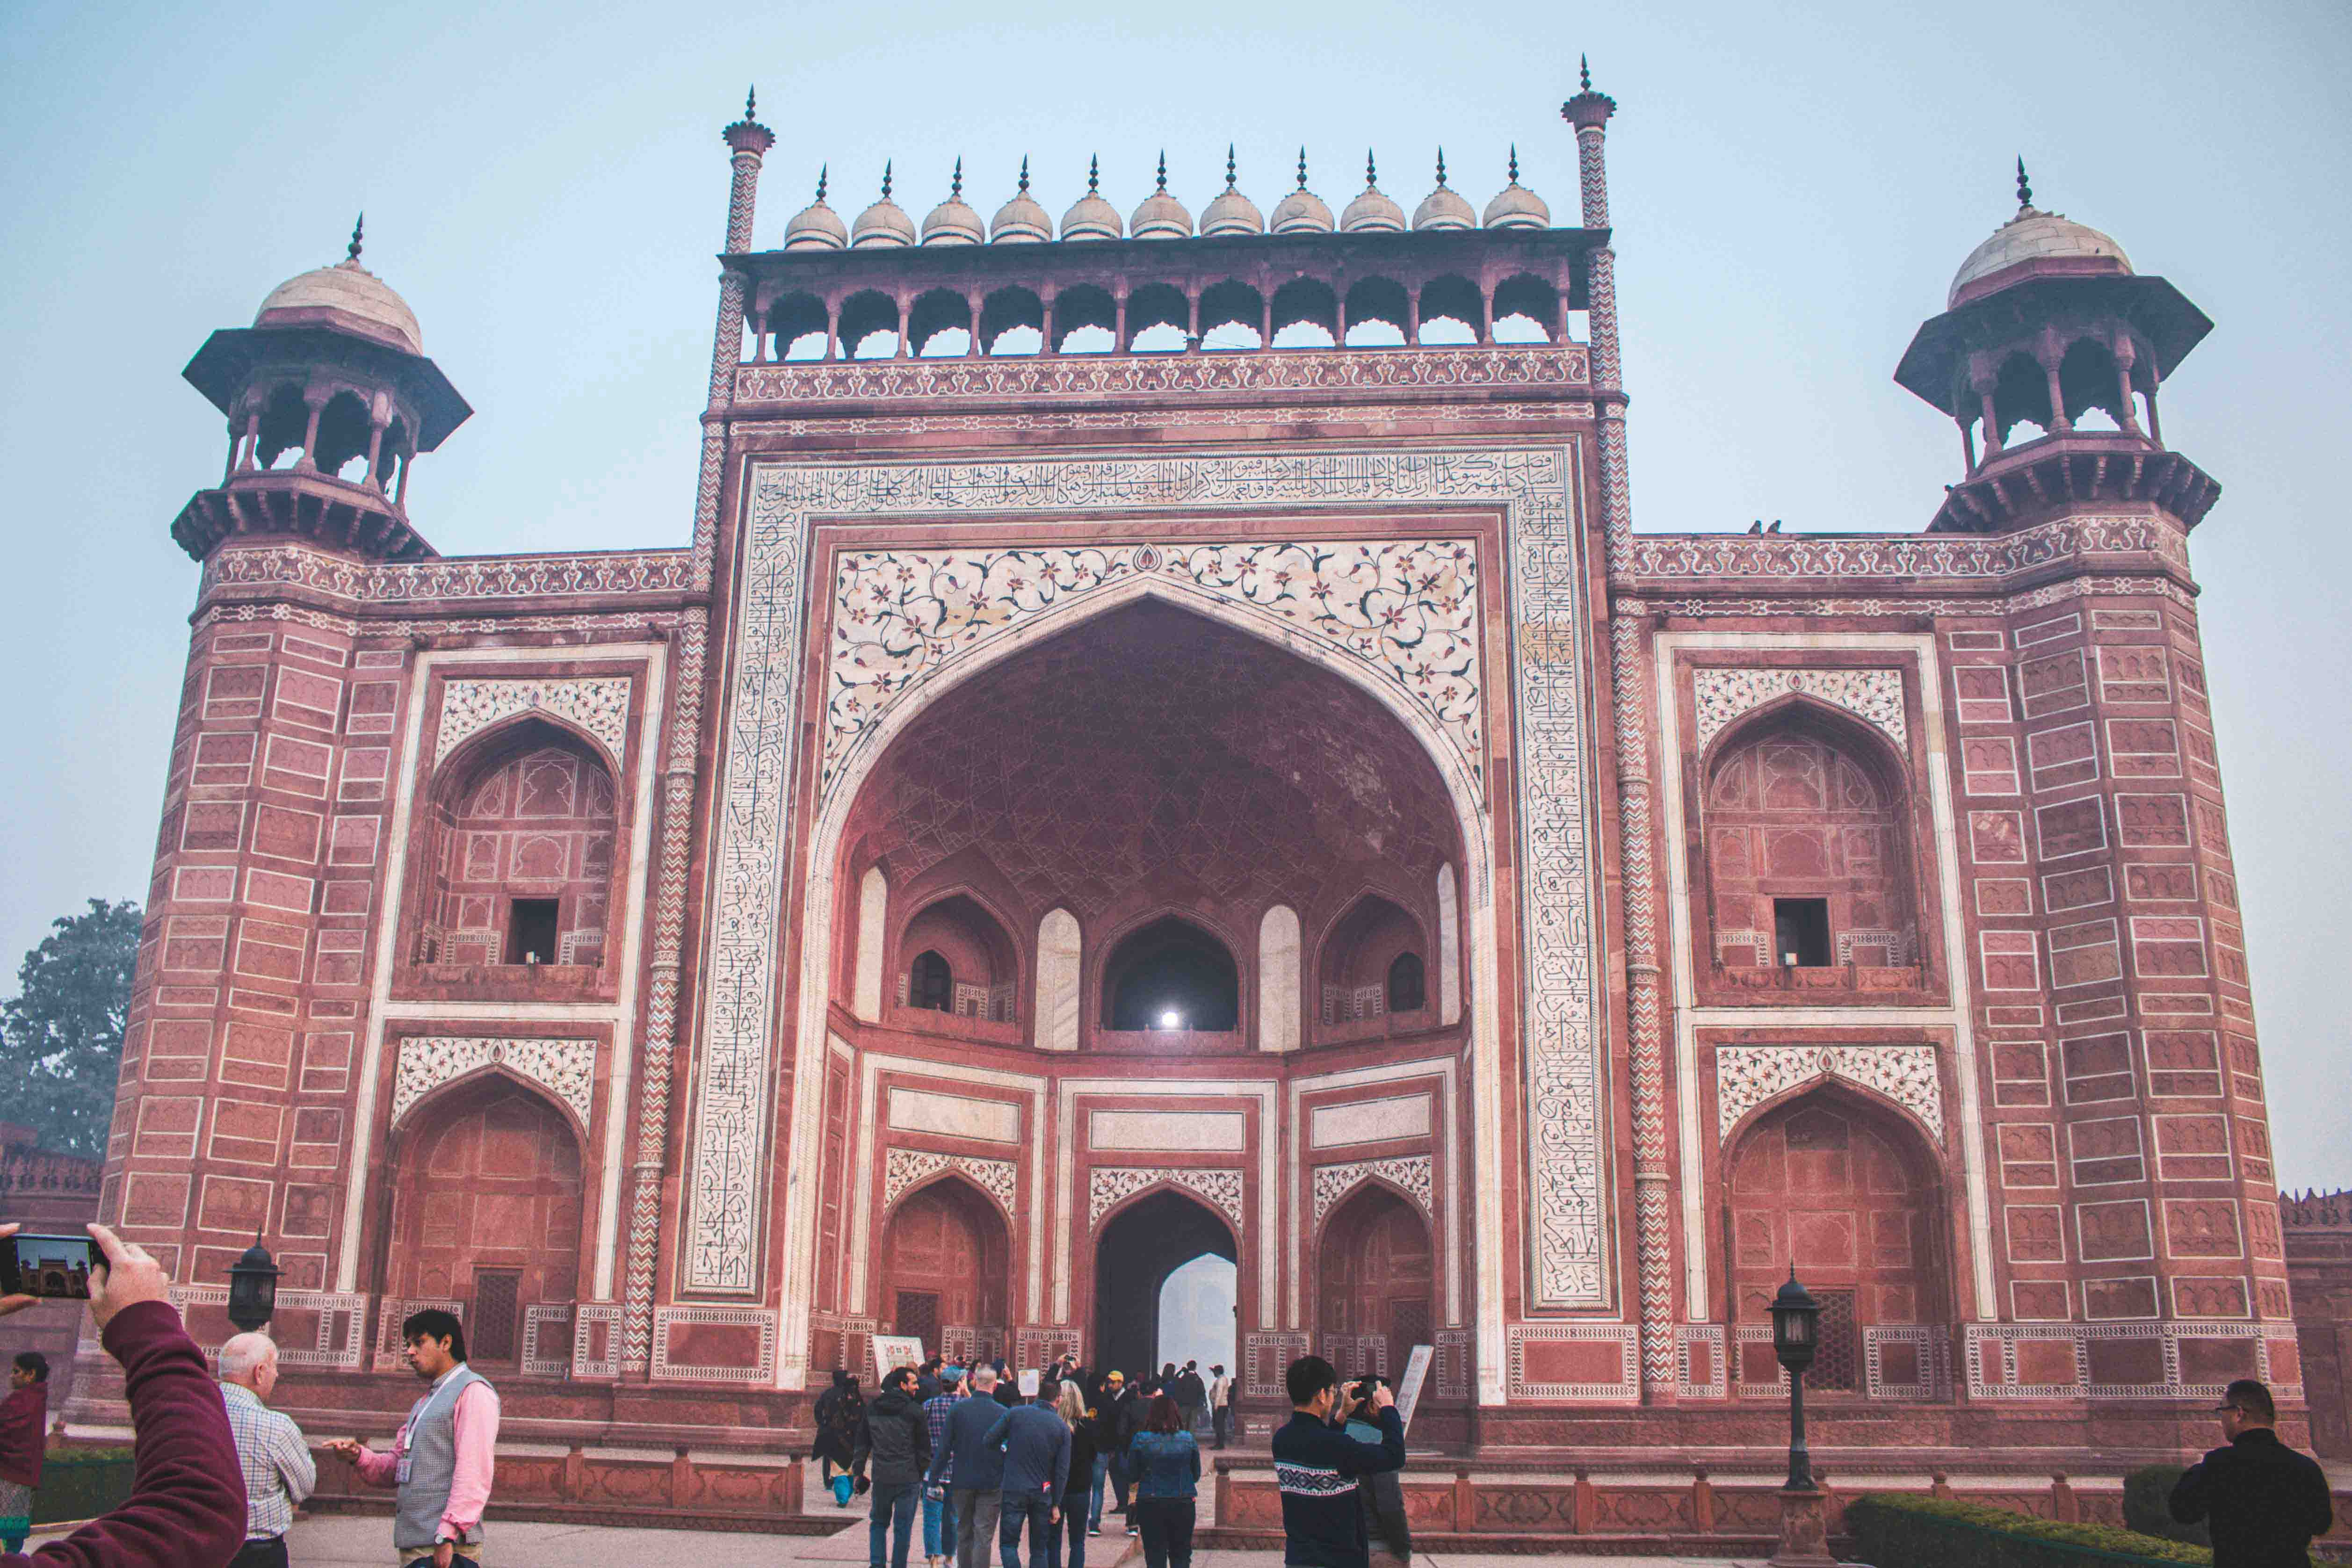 Half Day Tour of Taj Mahal and Agra Fort with Transfers